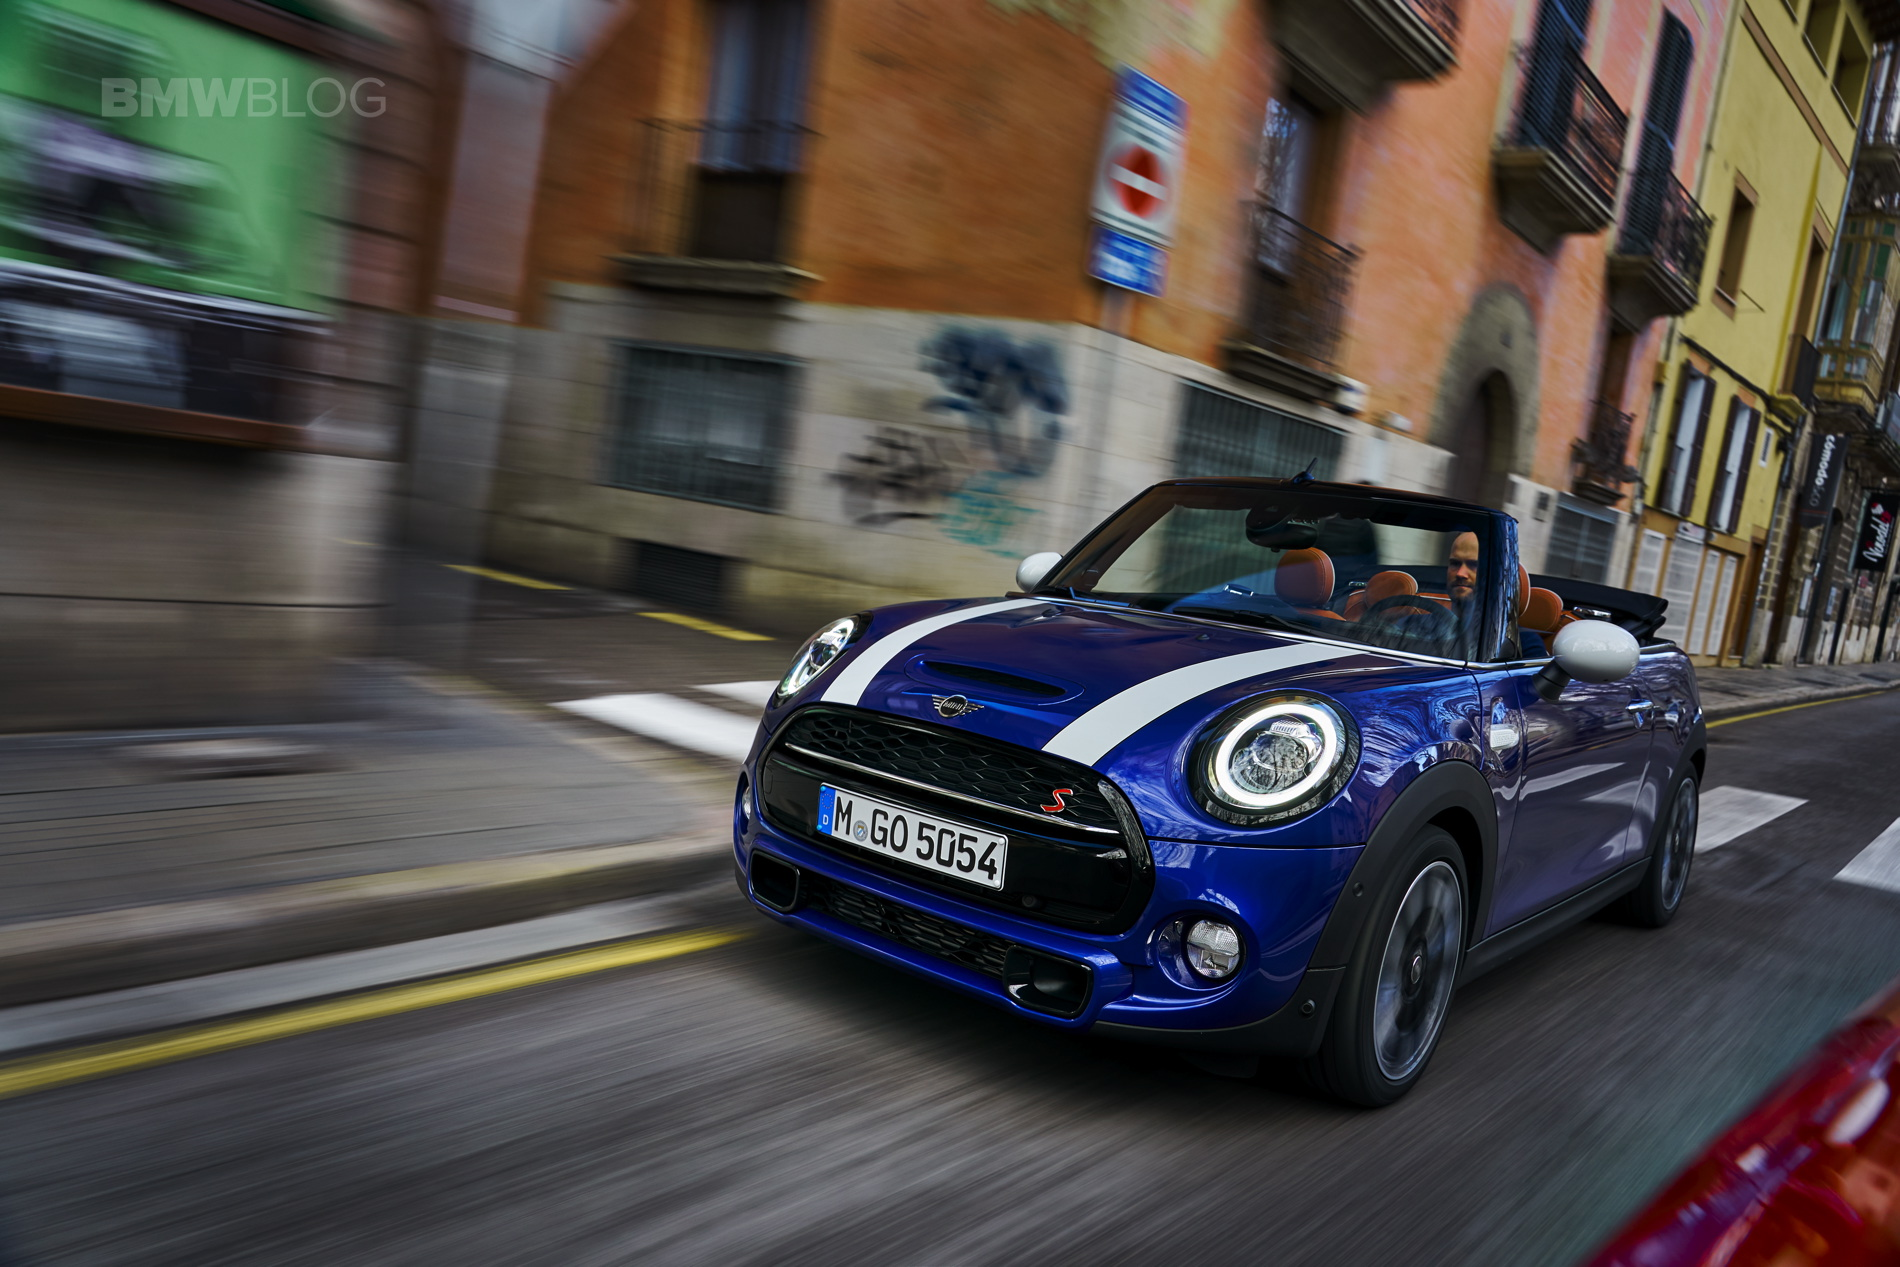 MINI Cooper S Convertible test drive 155